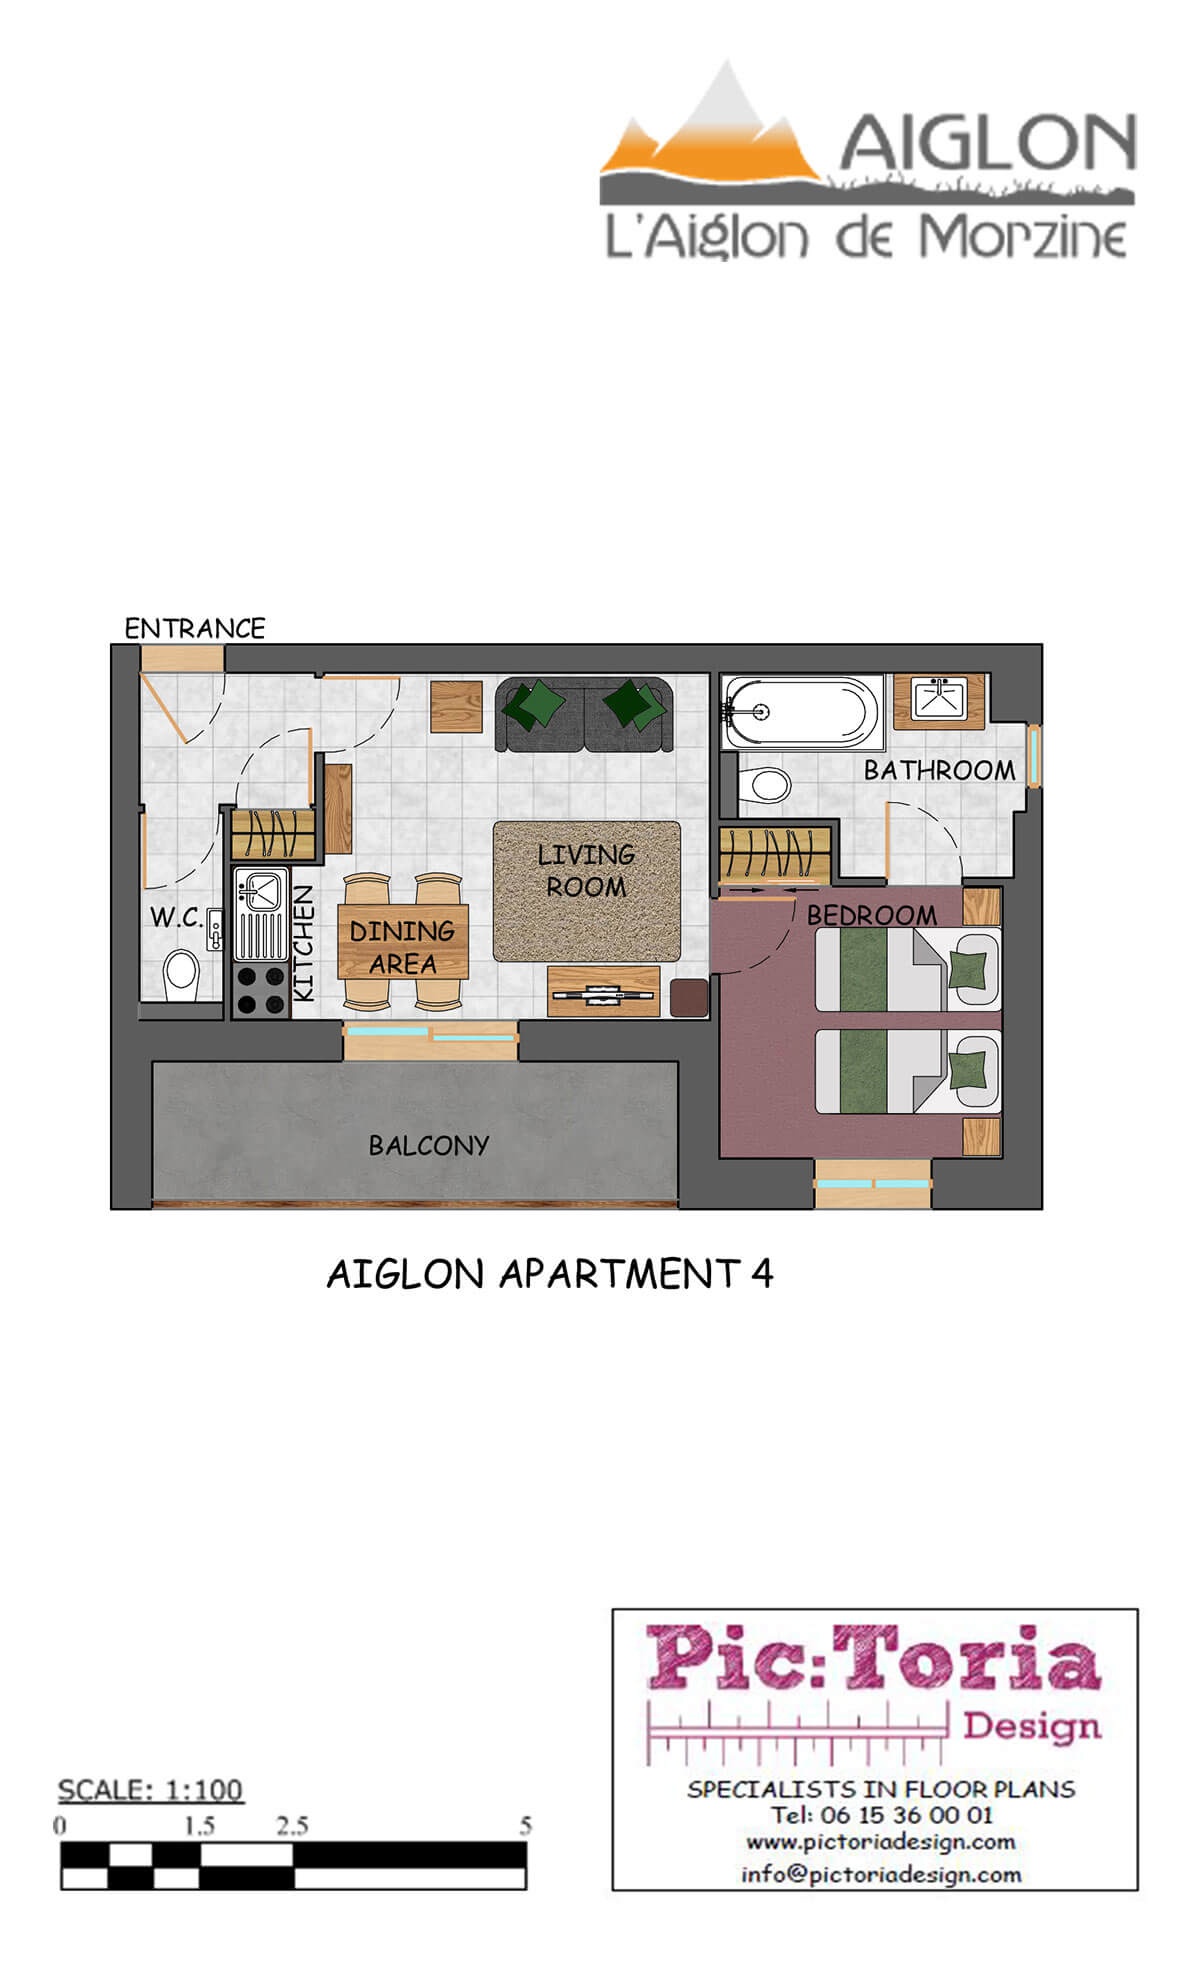 Image of Aiglon Morzine apartment floor 4 plan